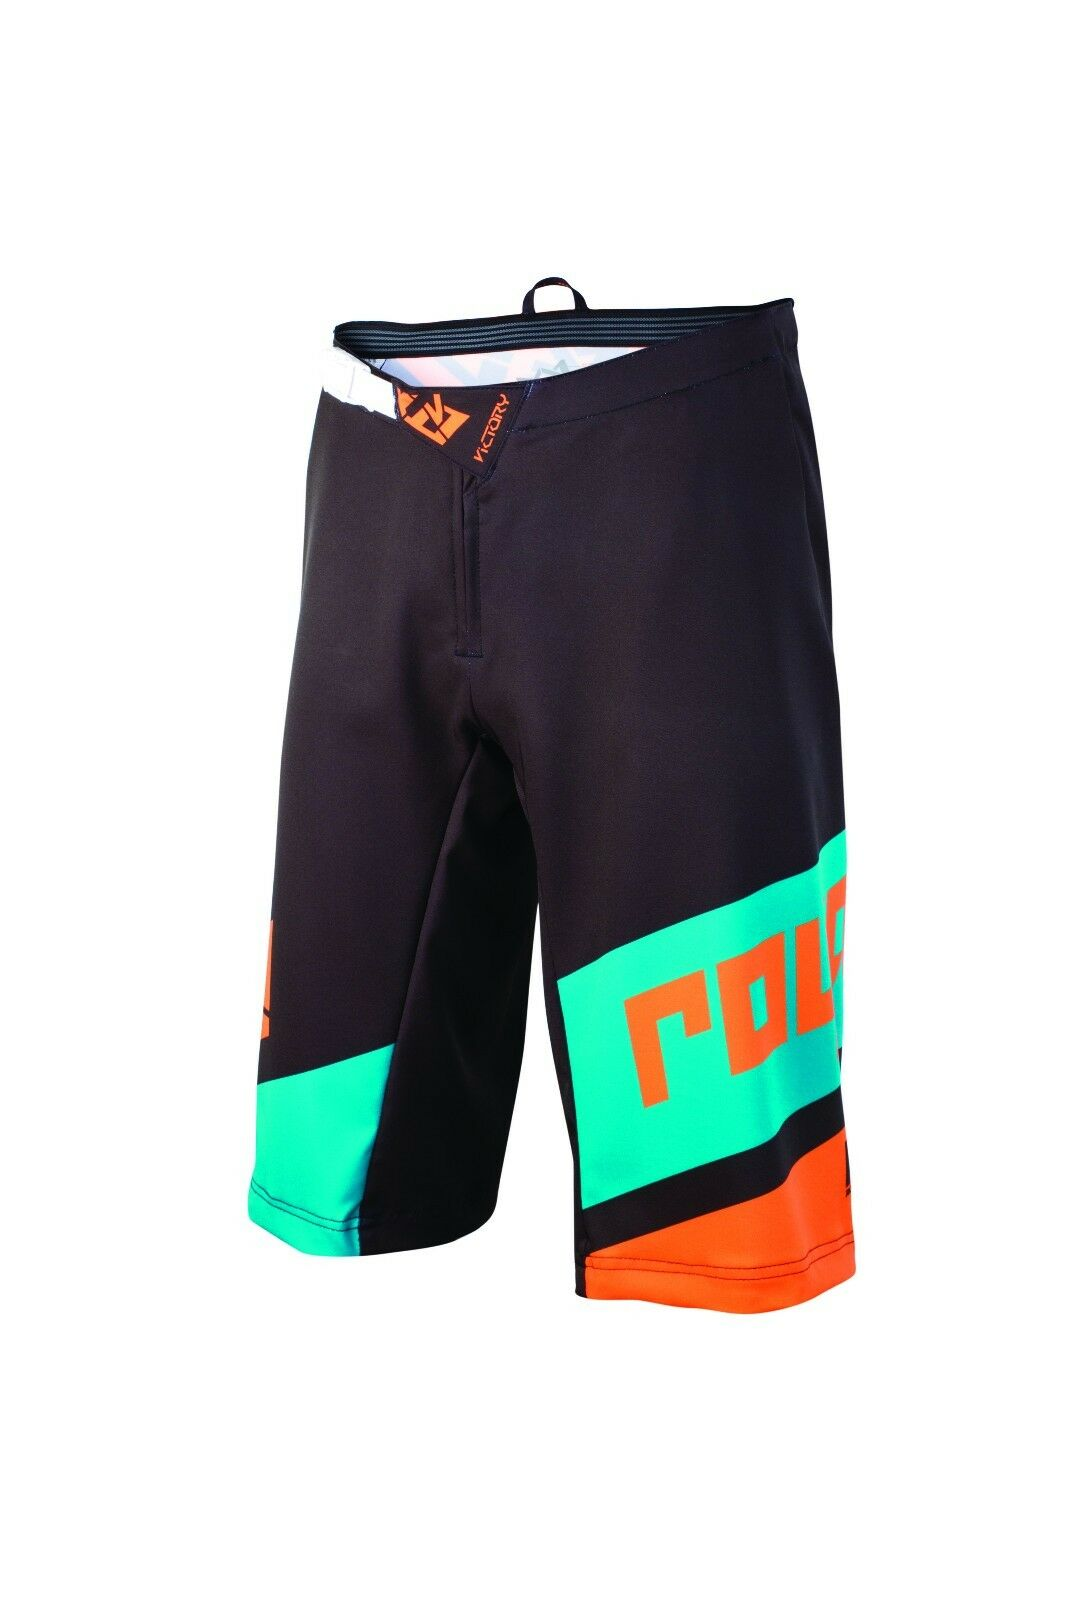 Royal Victory Race Shorts 2017 - All Colours - Downhill Downhill - Mountain Bike MTB DH 1e9977